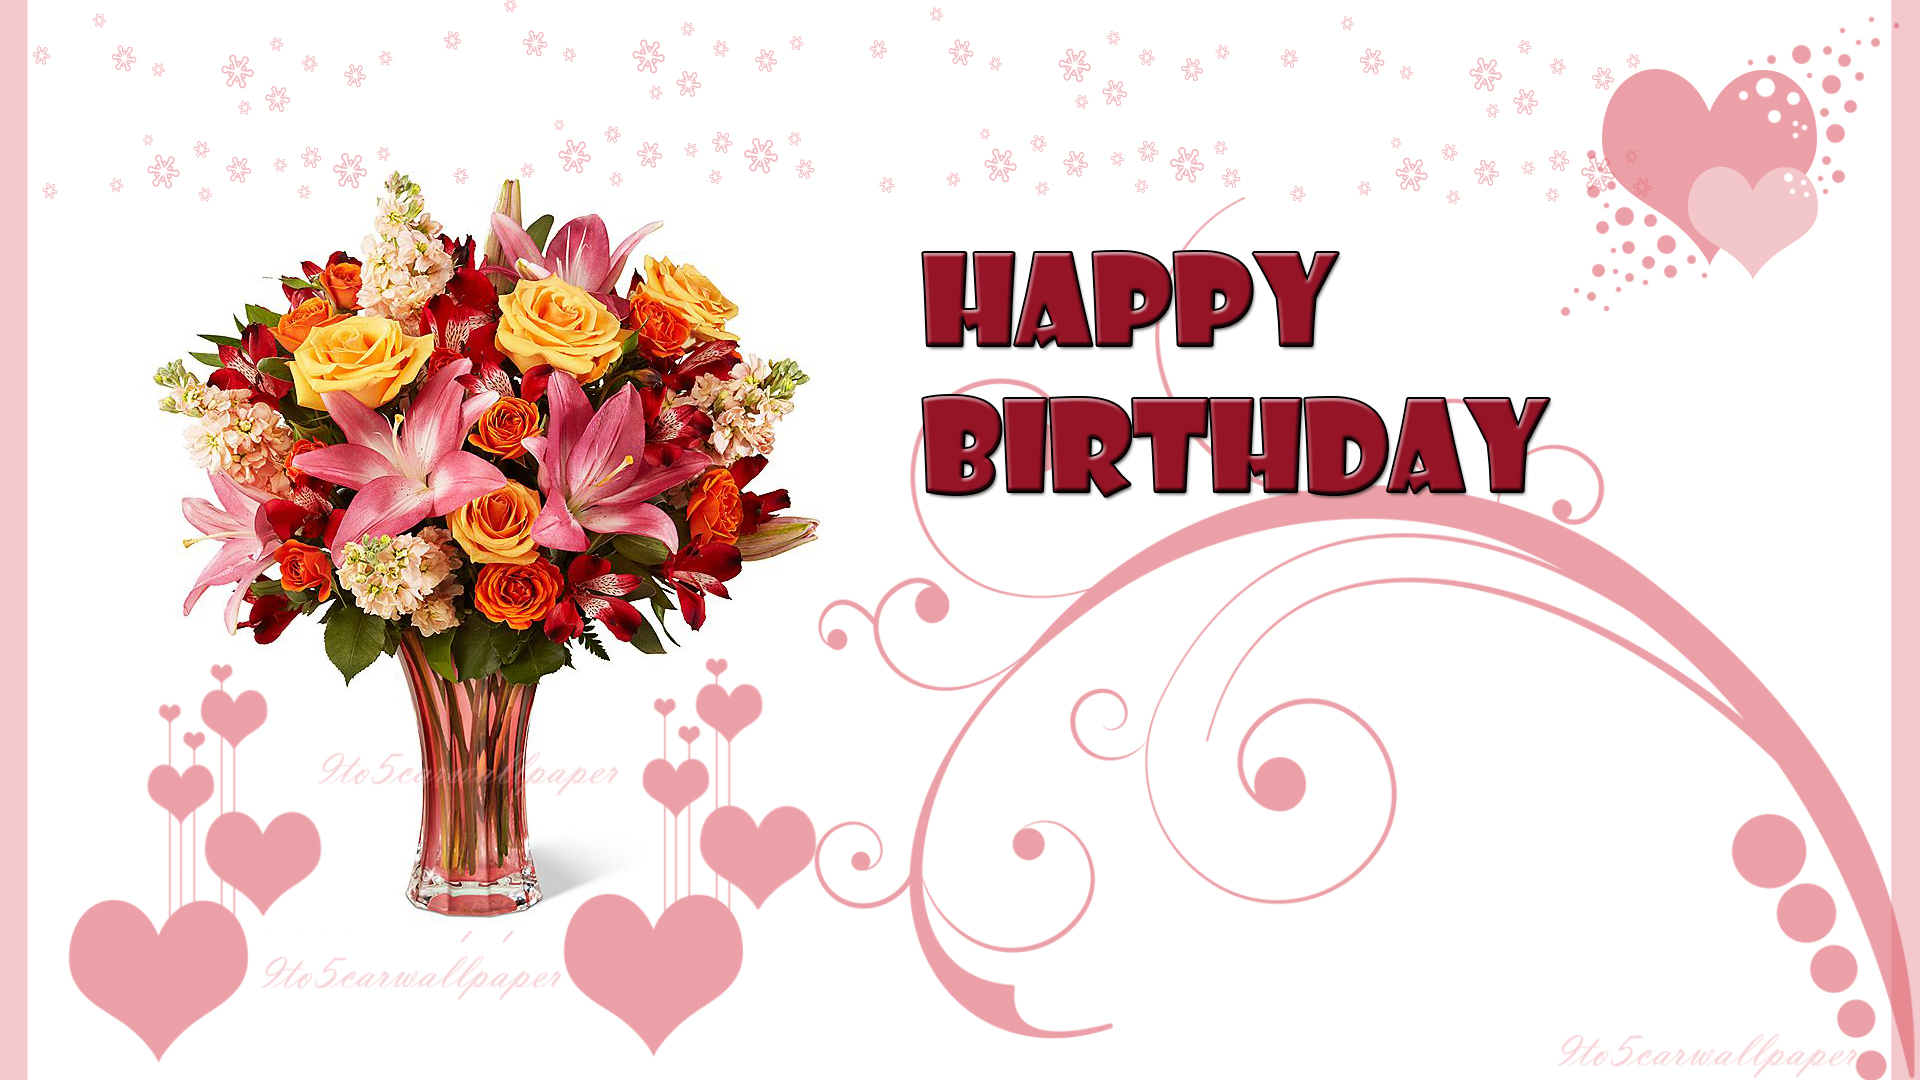 Best Birthday Quotes Images And Wallpapers My Site